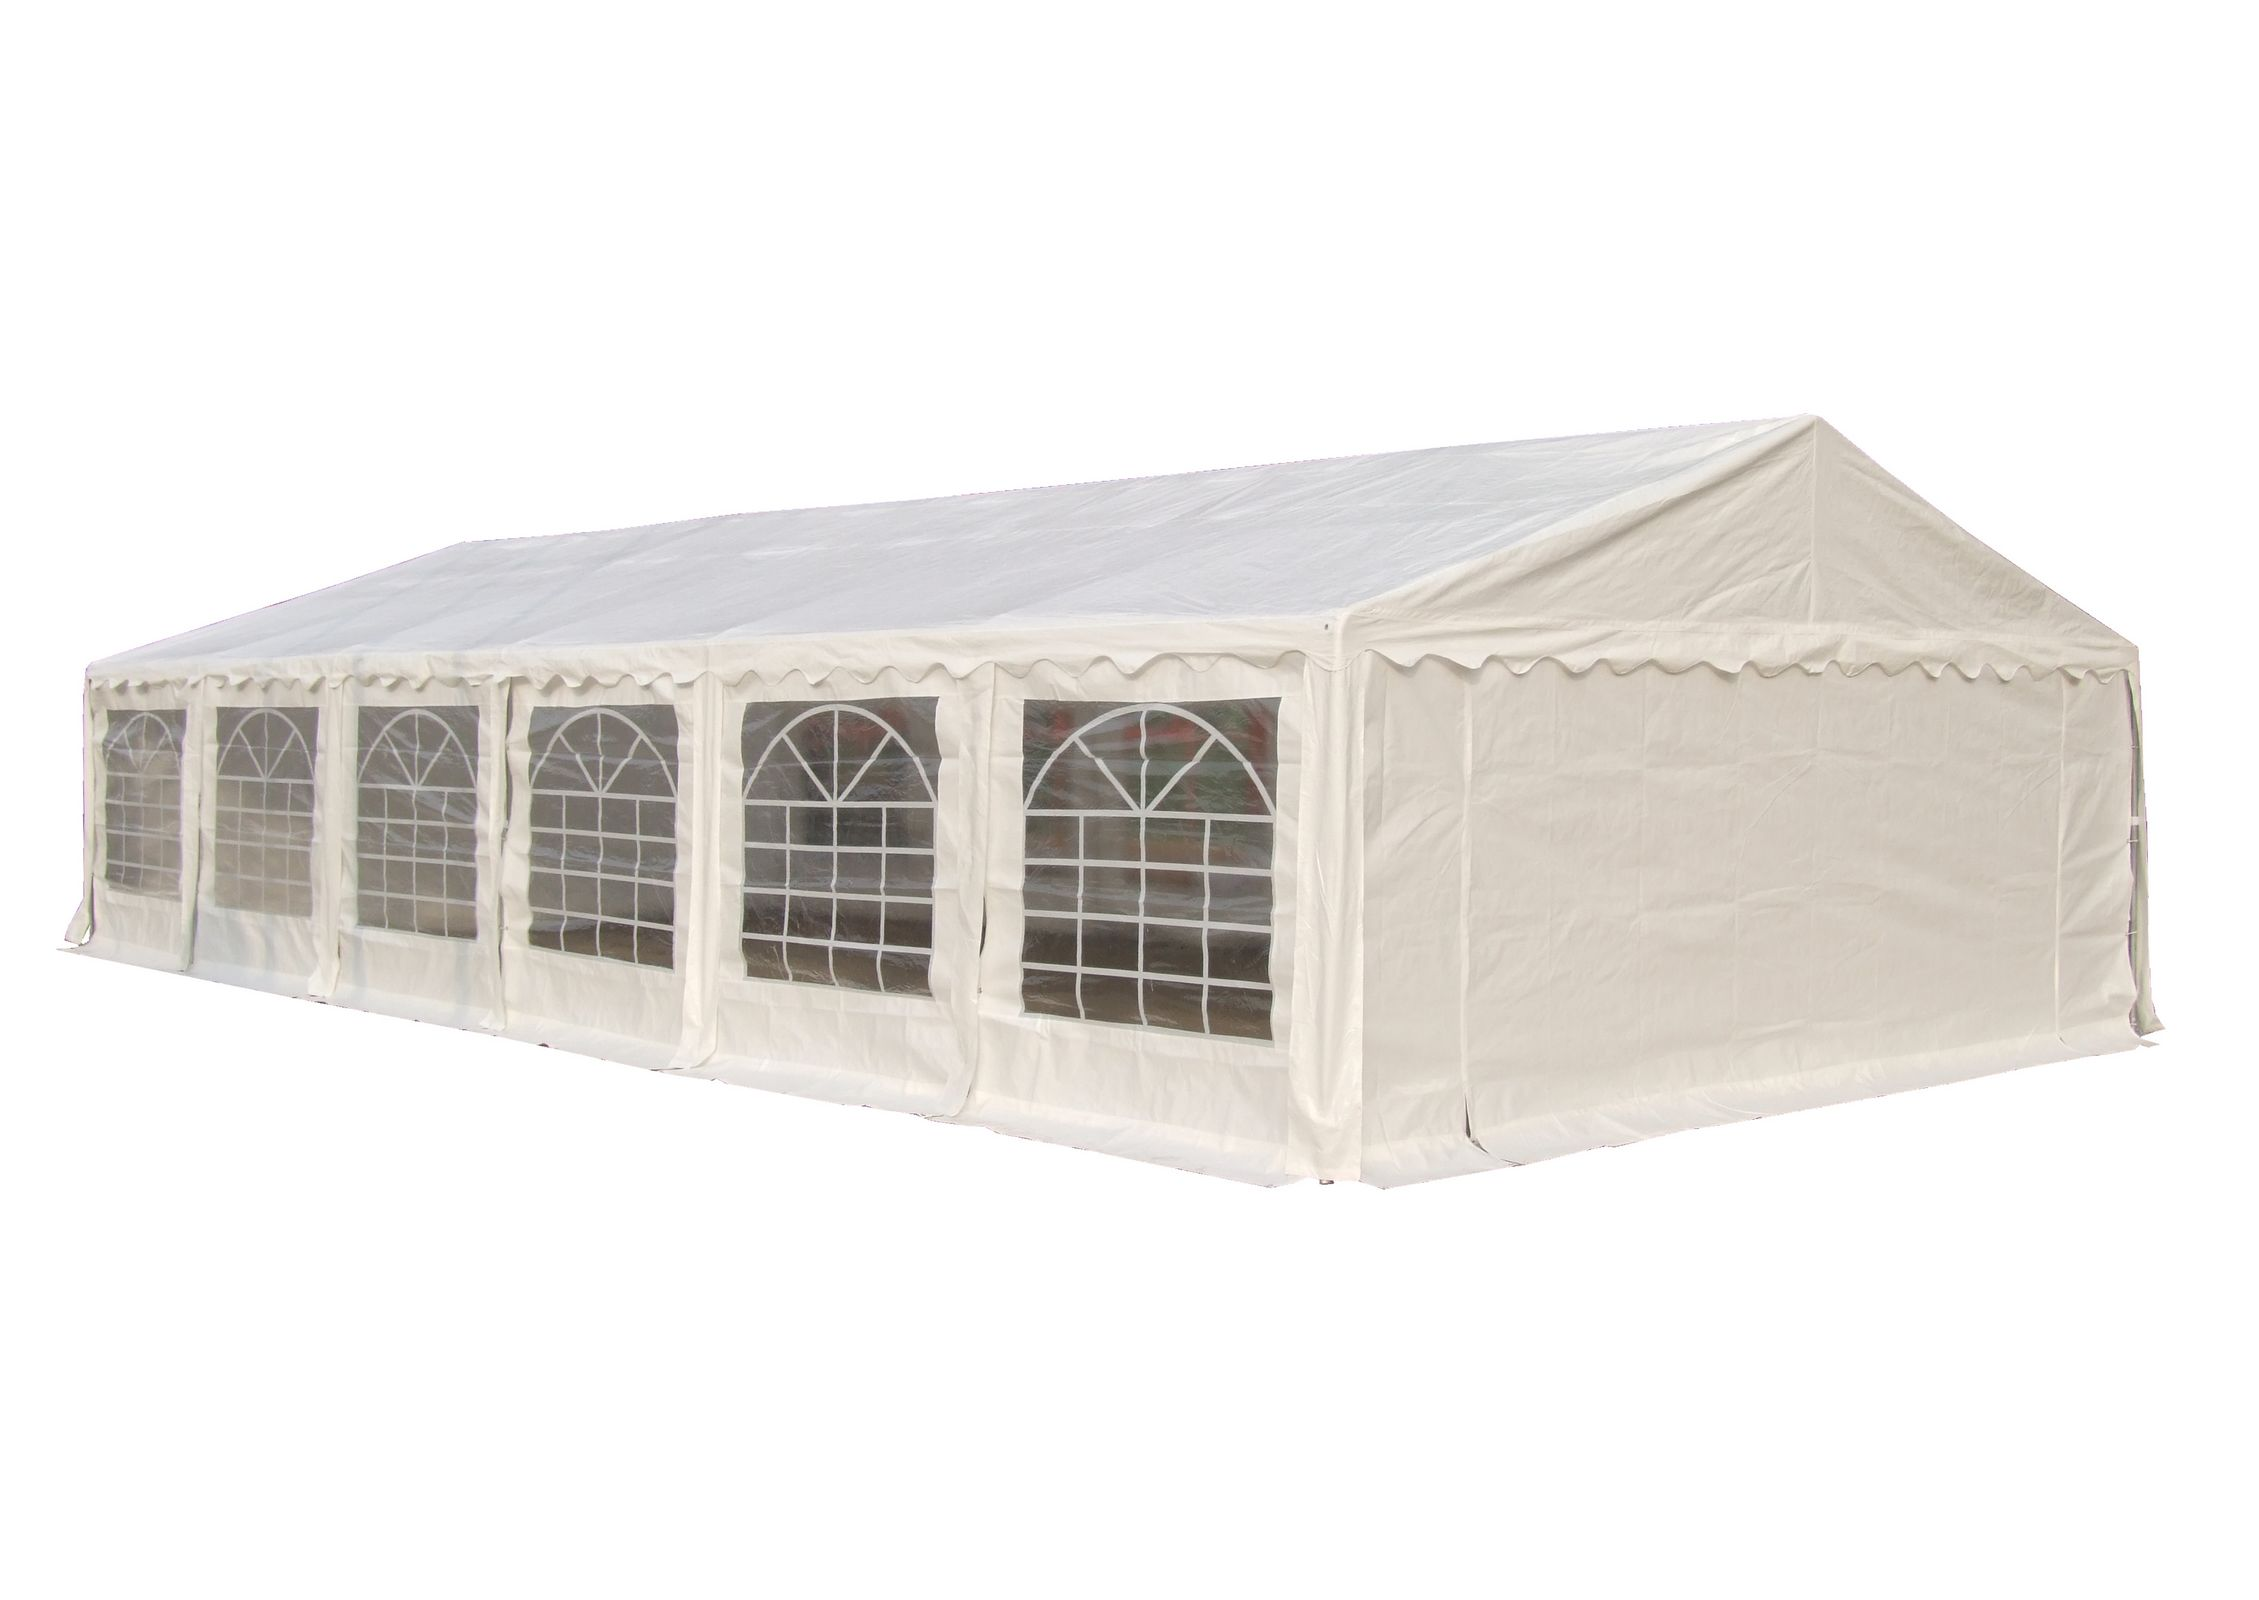 Foxhunter Waterproof Marquee 12m X 6m Heavy Duty Wedding